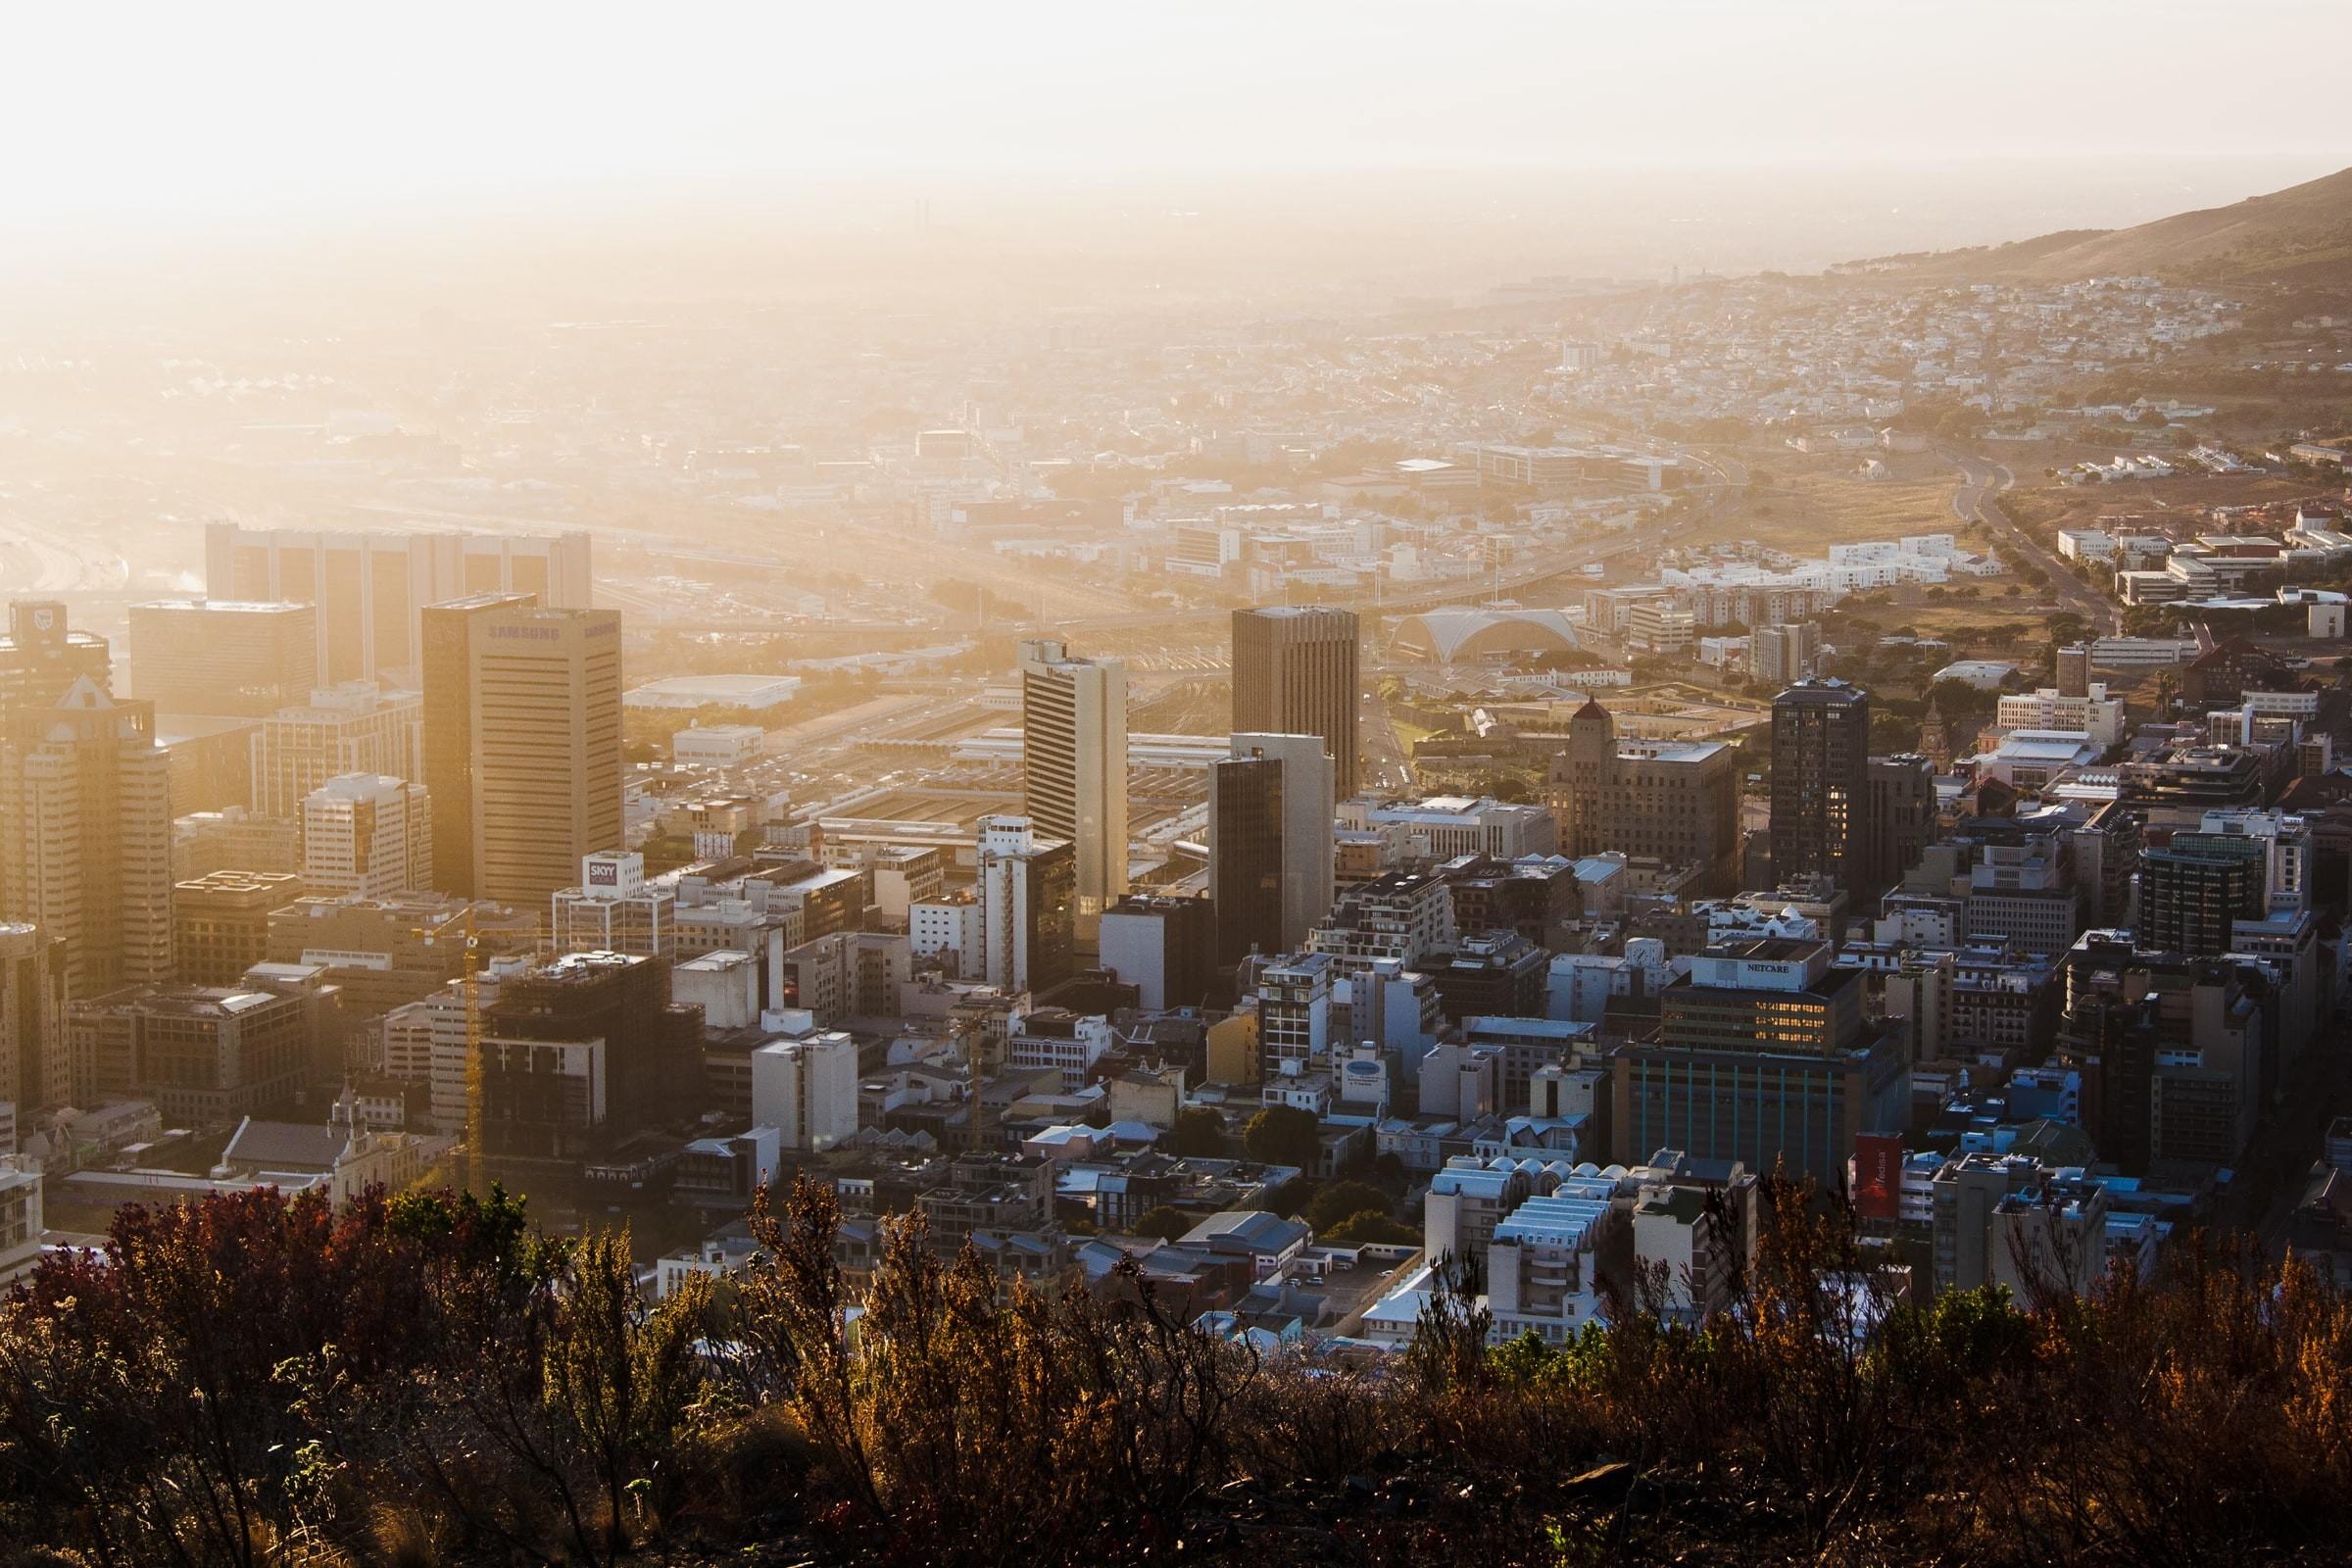 South Africa Cape Town lifts restrictions International travel news wrap